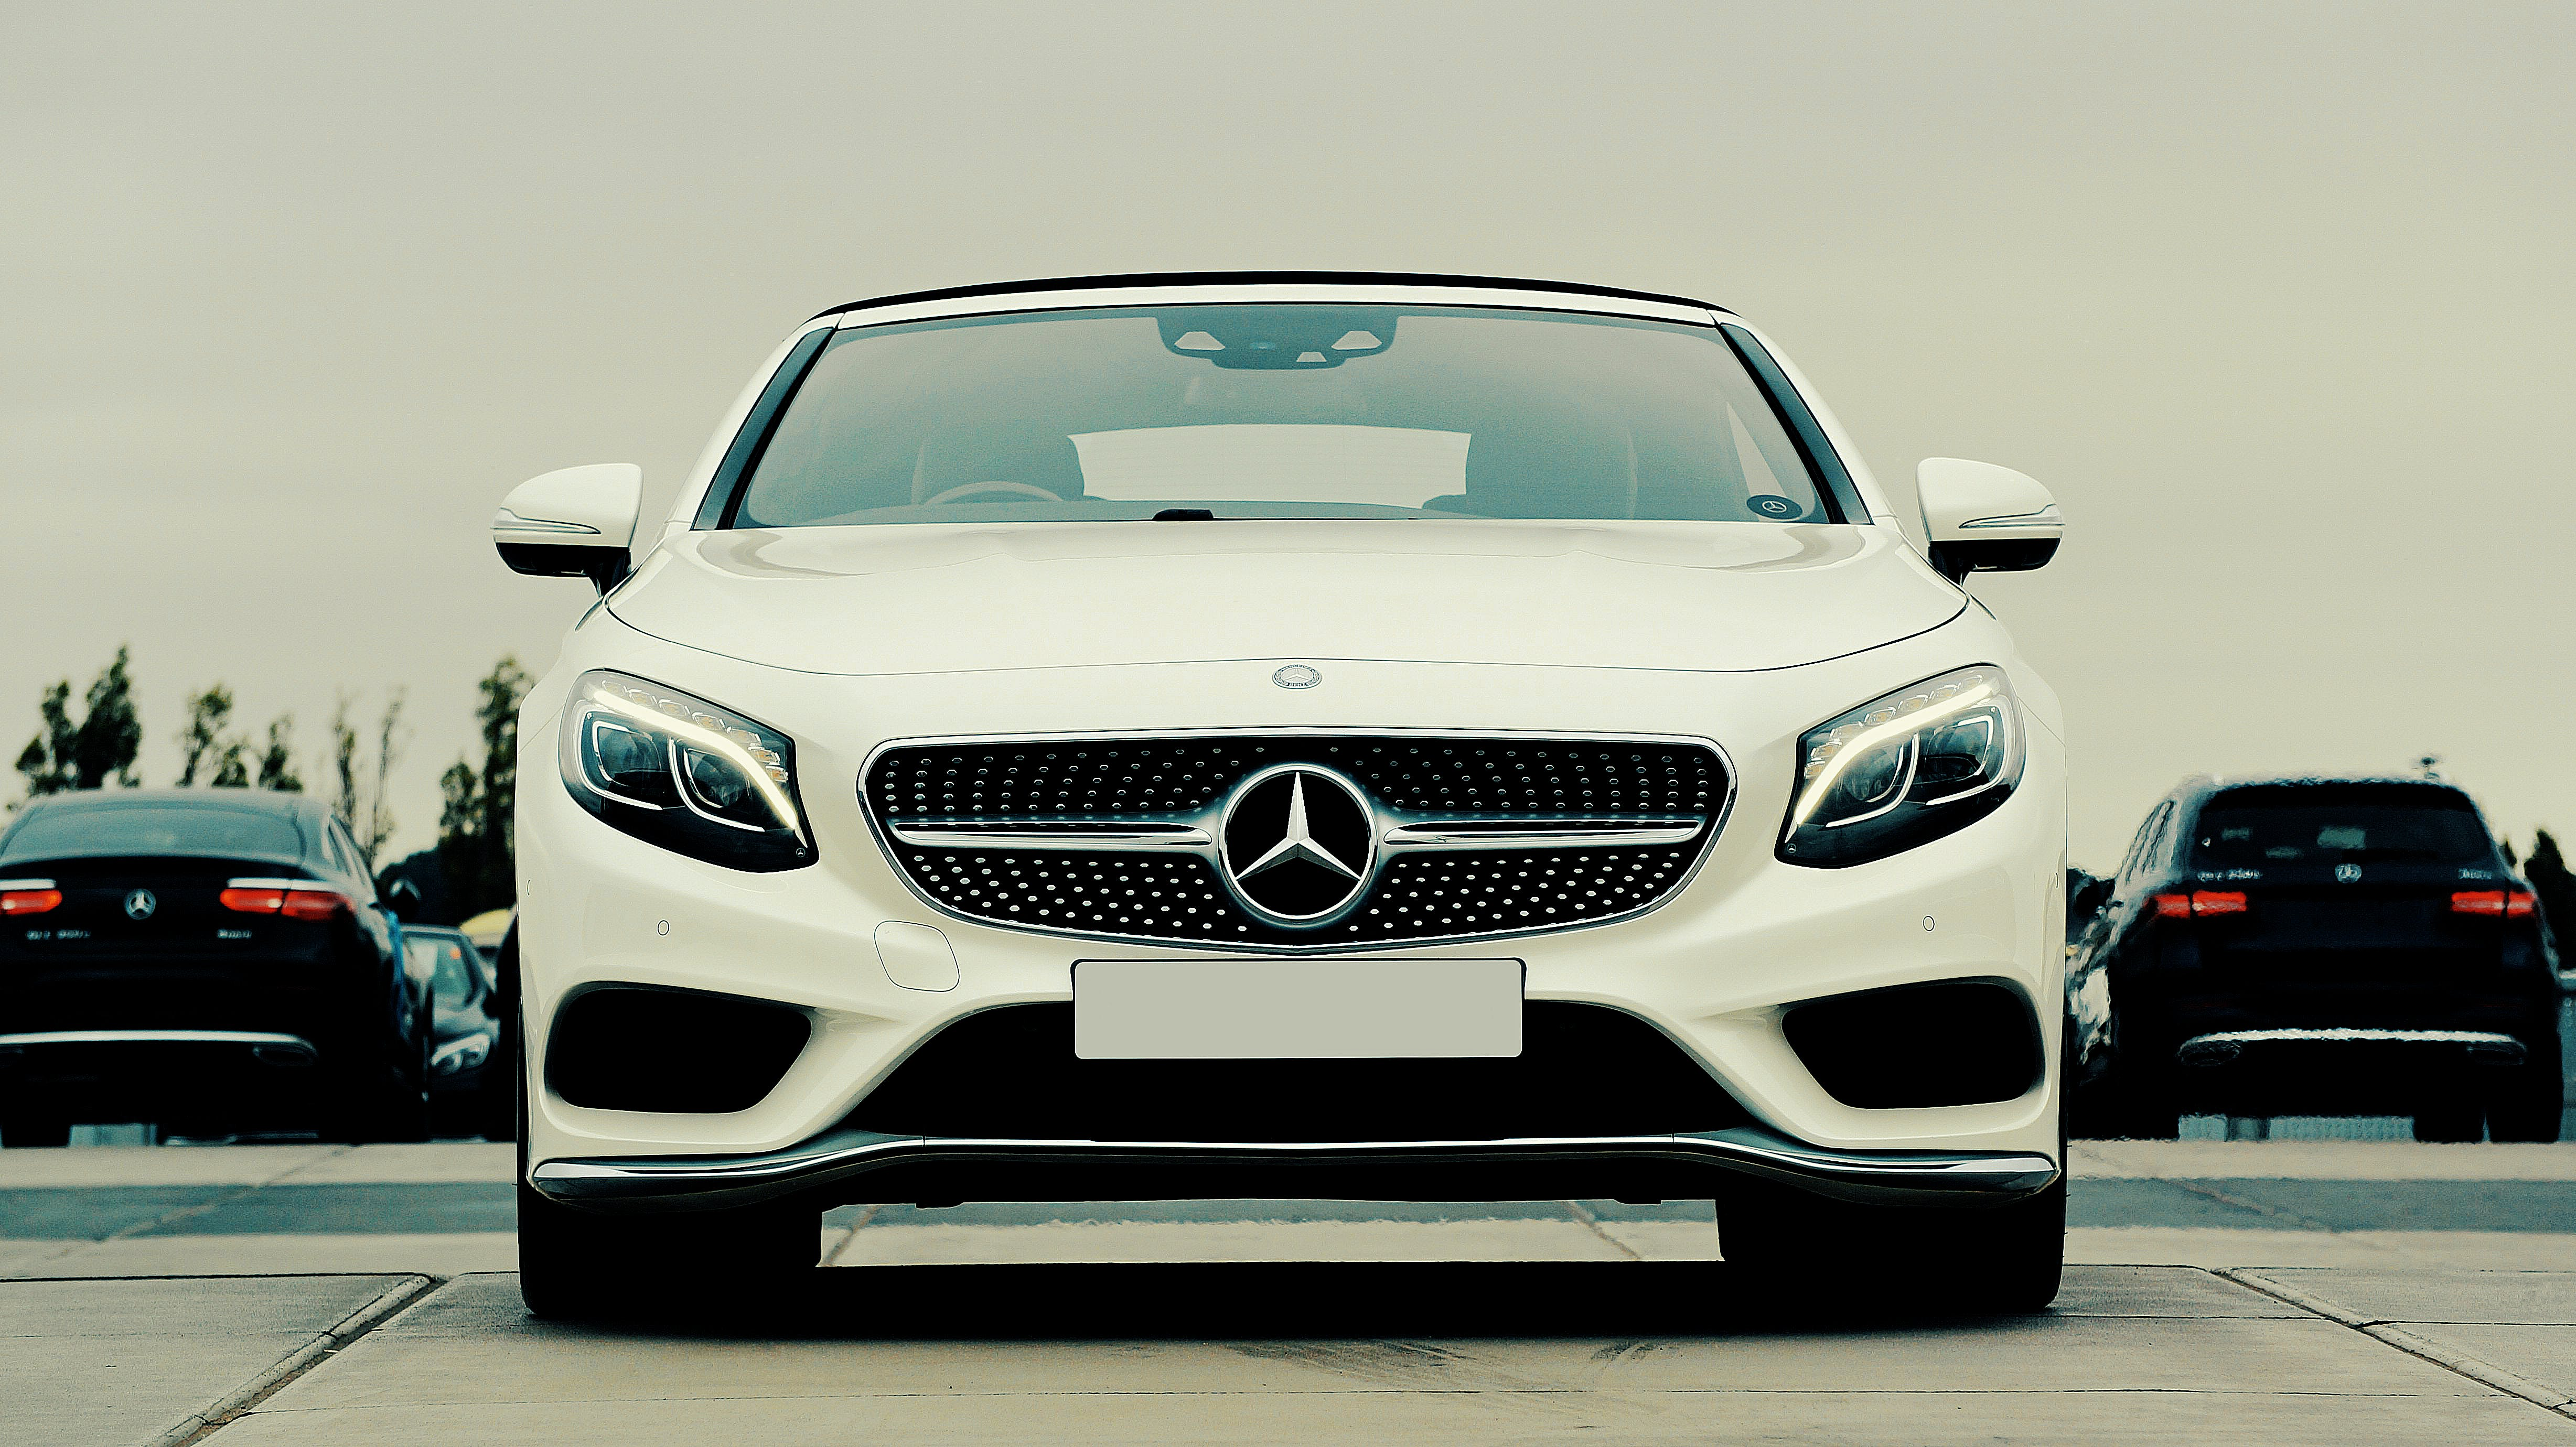 Free stock photo of car, vehicle, sports car, speed